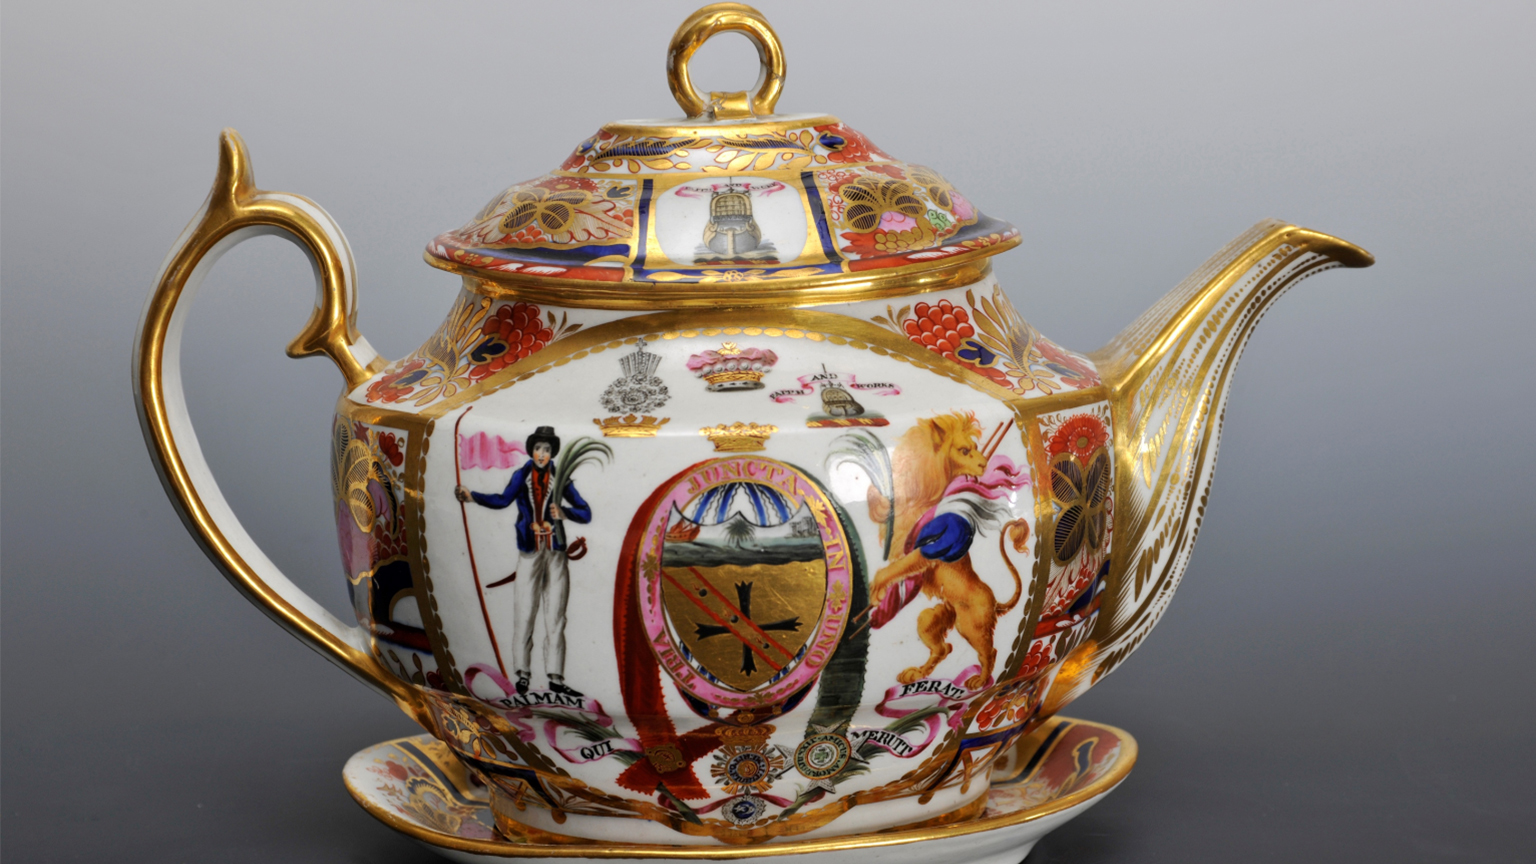 Lord Nelson Teapot, 1802.